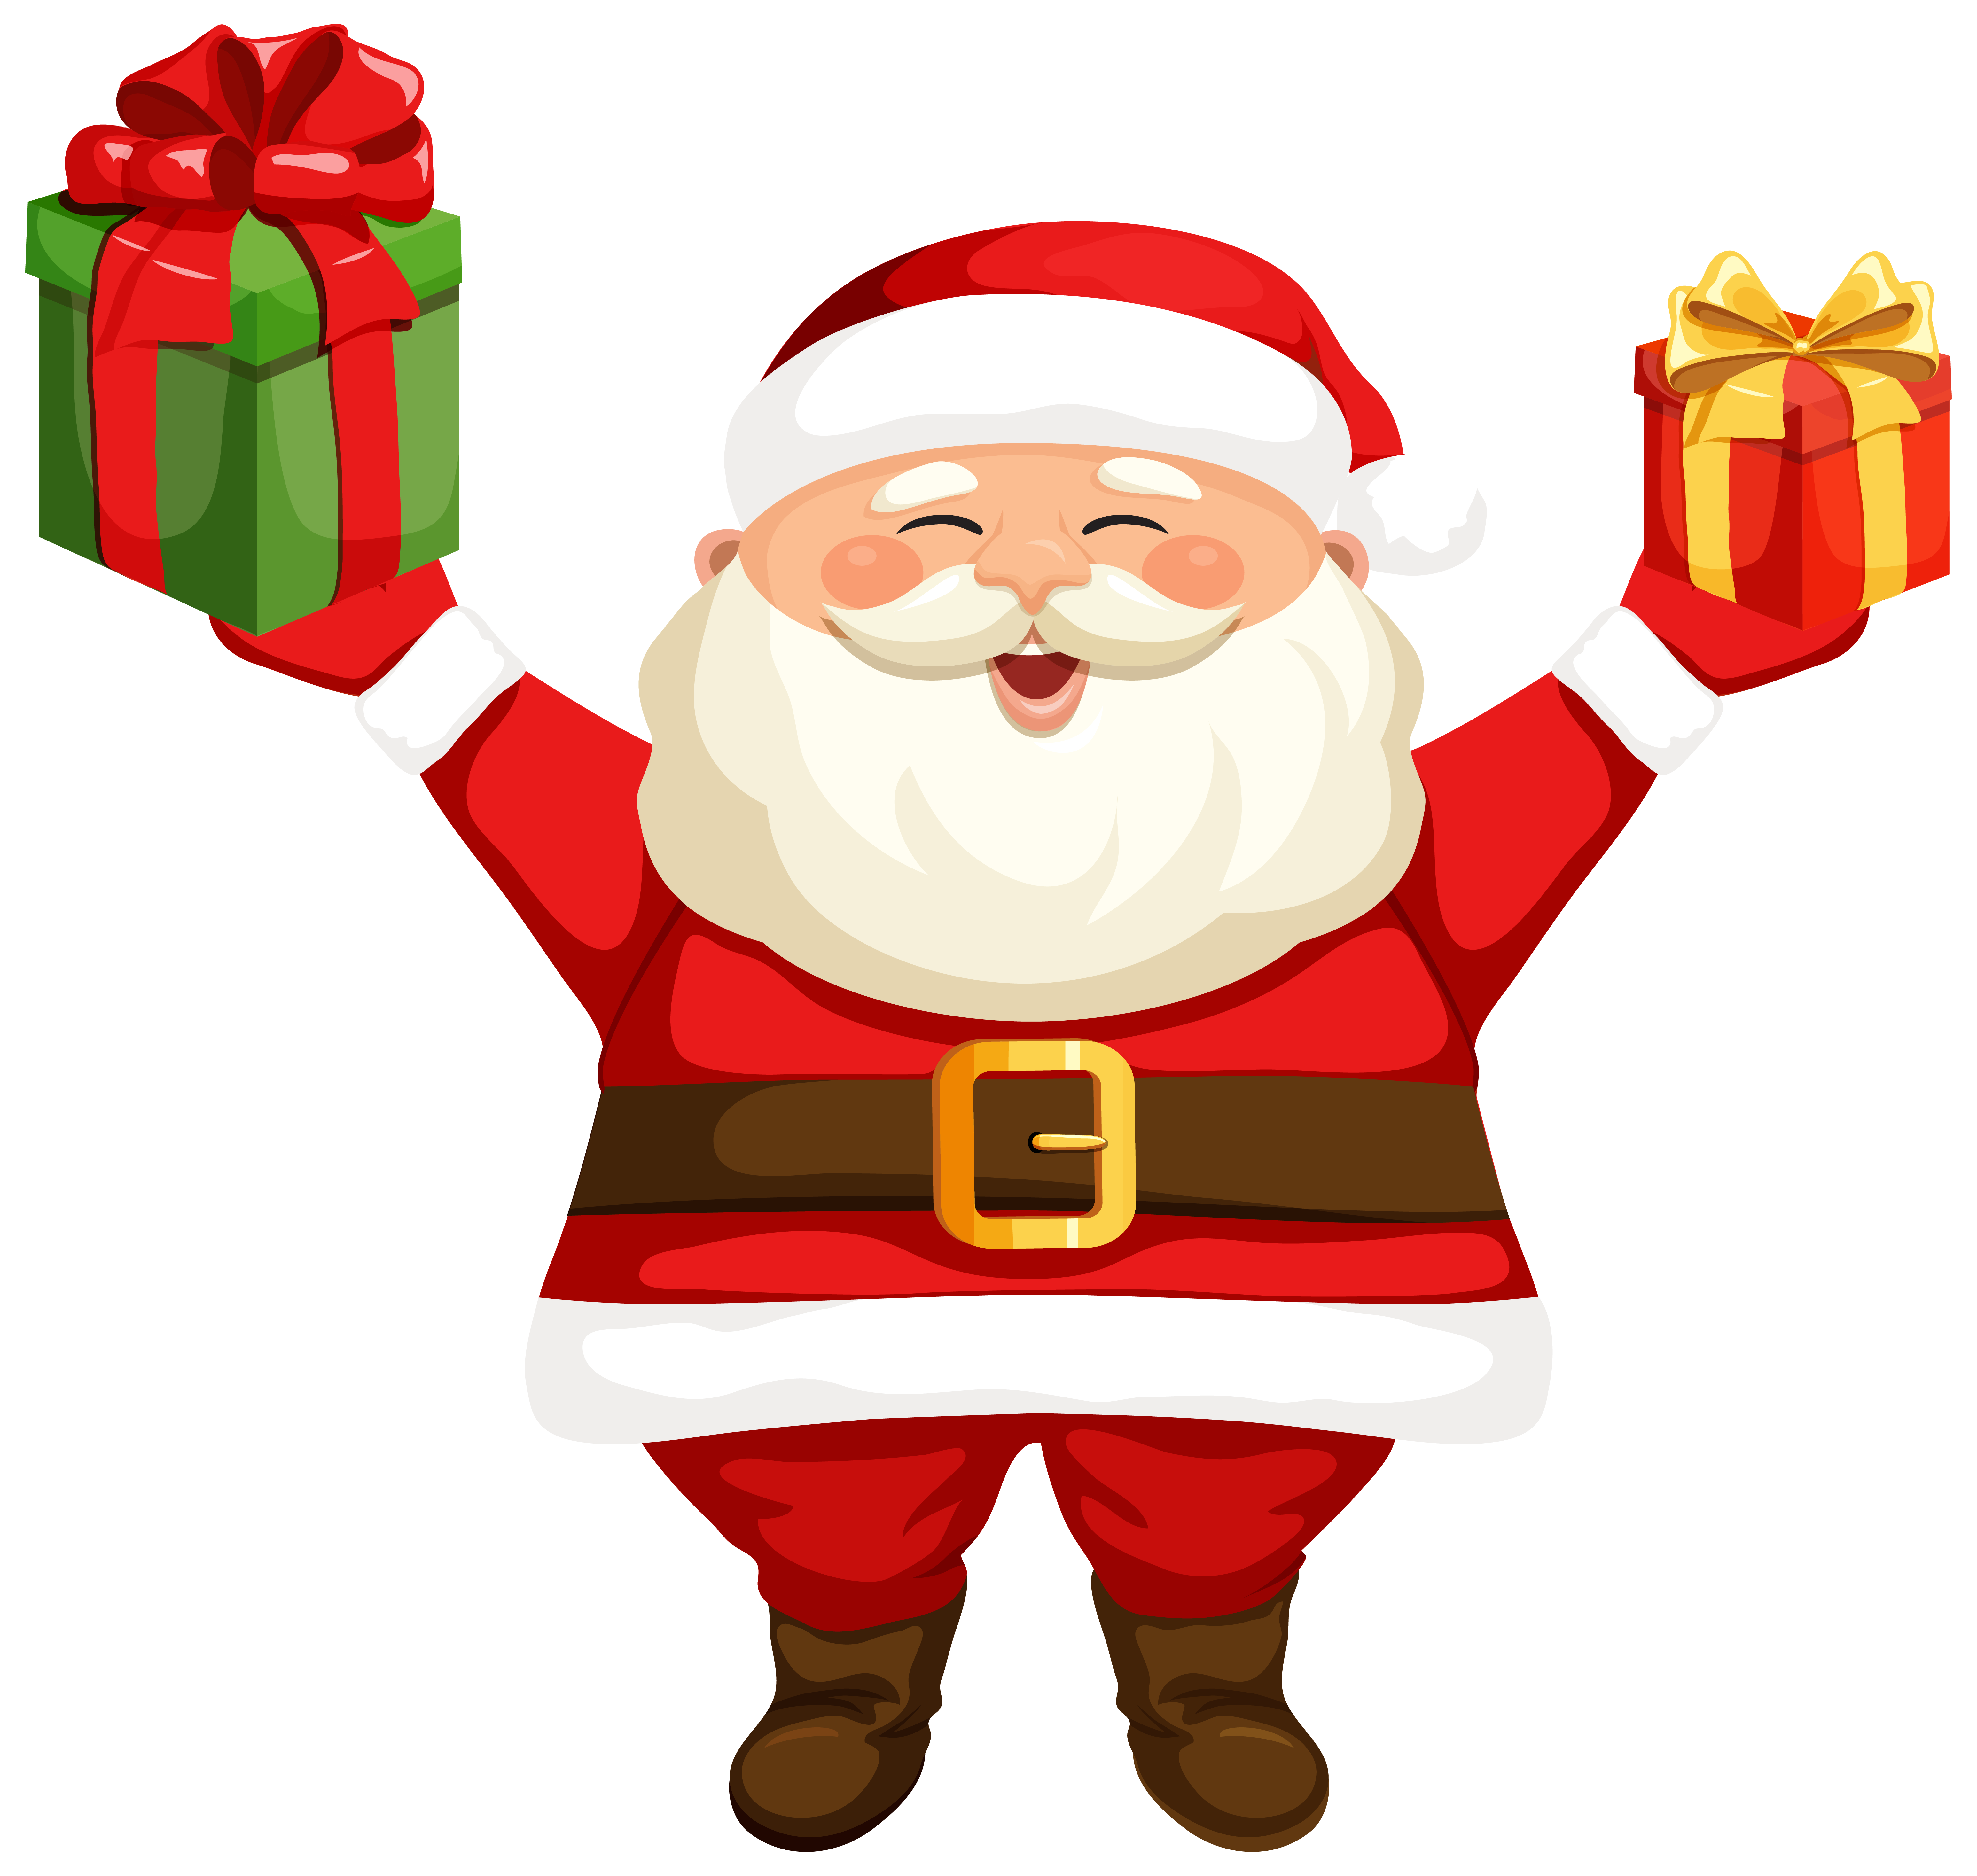 Claus clipart. Santa with gifts png